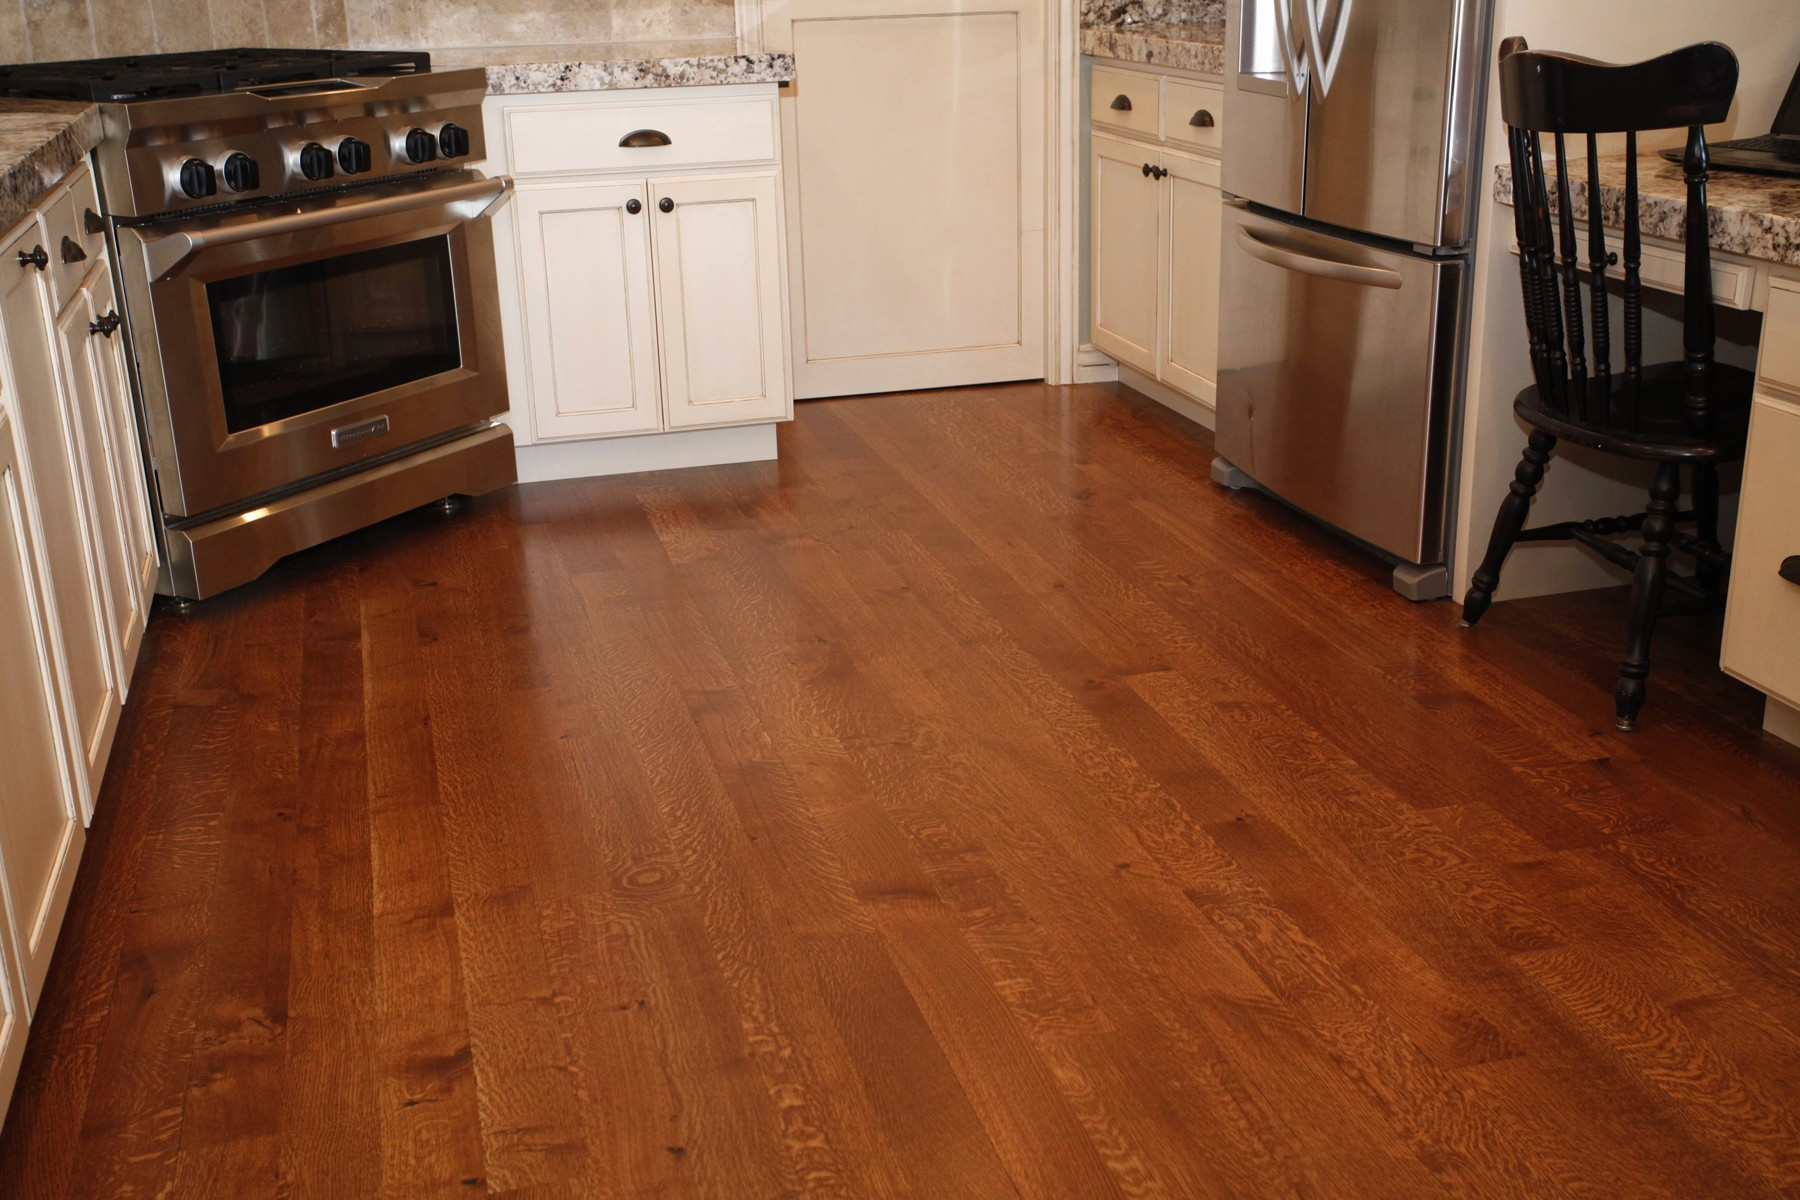 cheap engineered hardwood flooring of 18 new engineered hardwood flooring pros and cons photos dizpos com within engineered hardwood flooring pros and cons unique picture 8 of 50 hand scraped hardwood flooring pros